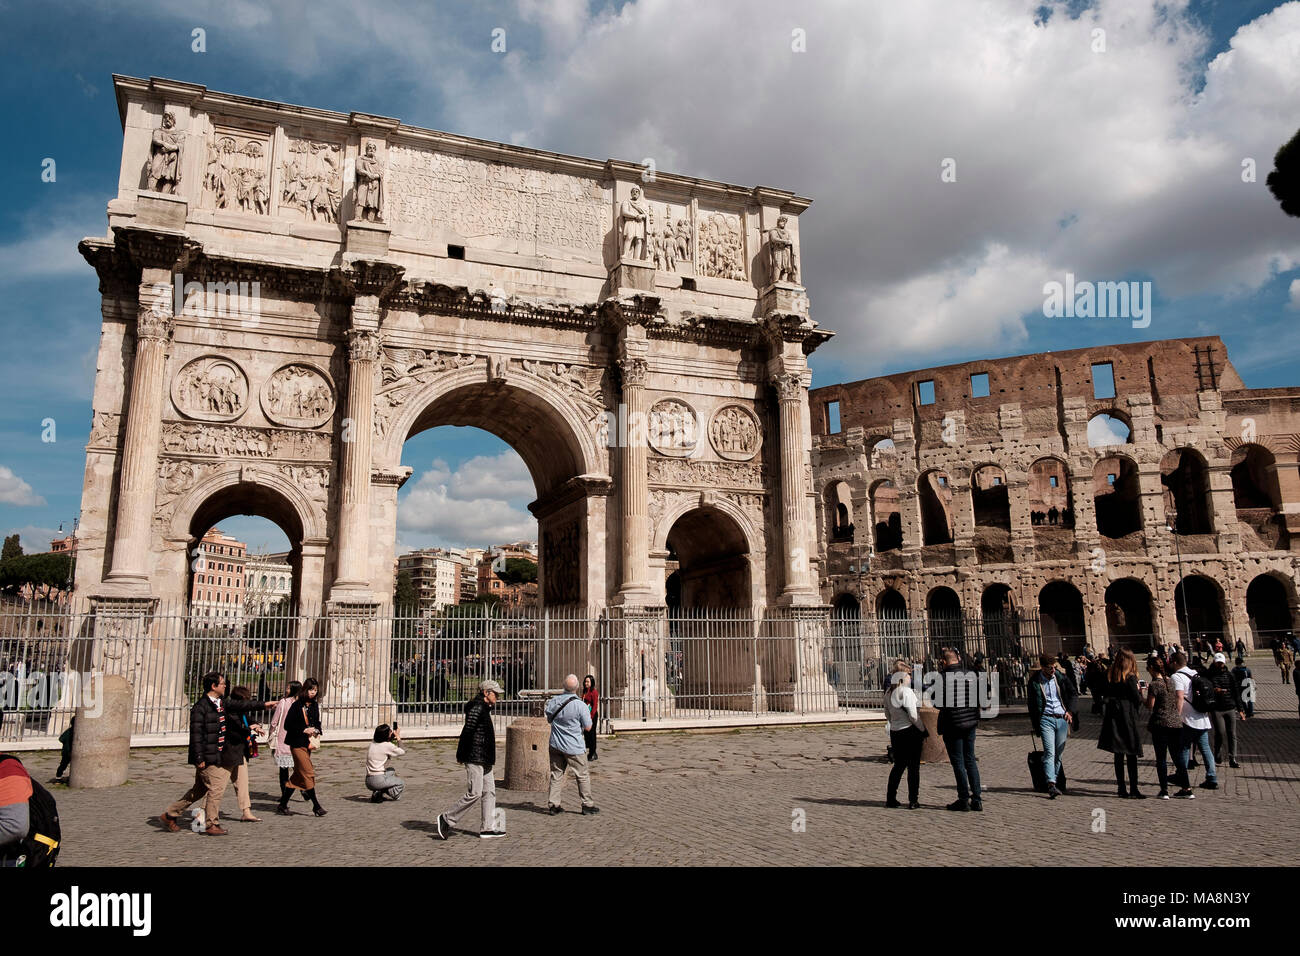 The Arch of Constantine, Arco di Costantino, and The Colosseum, Rome - Stock Image